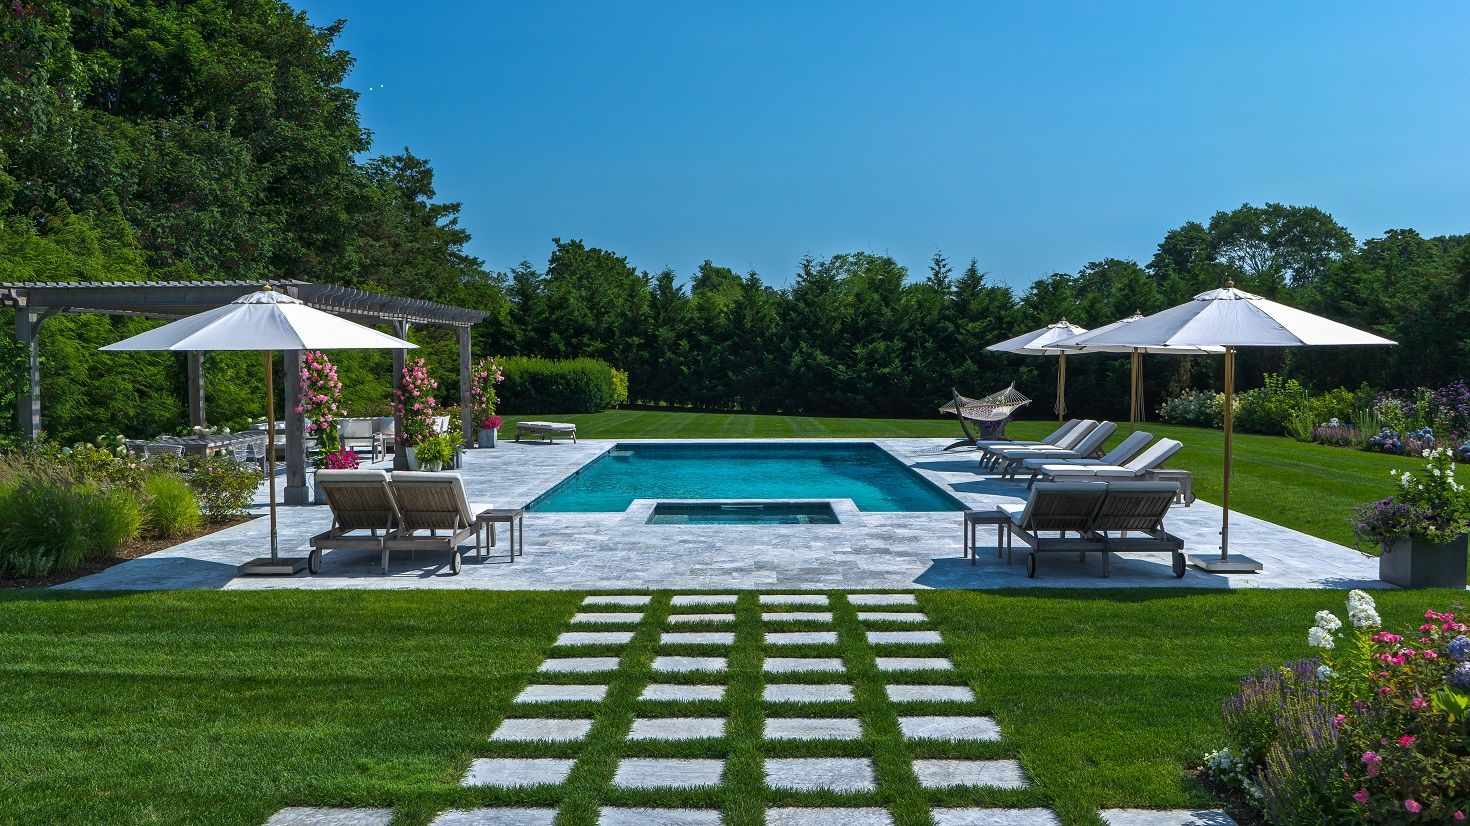 Pin By King And Company Landscape Con On Landscaping In The Hamptons Patio Outdoor Decor Landscaping Near Me